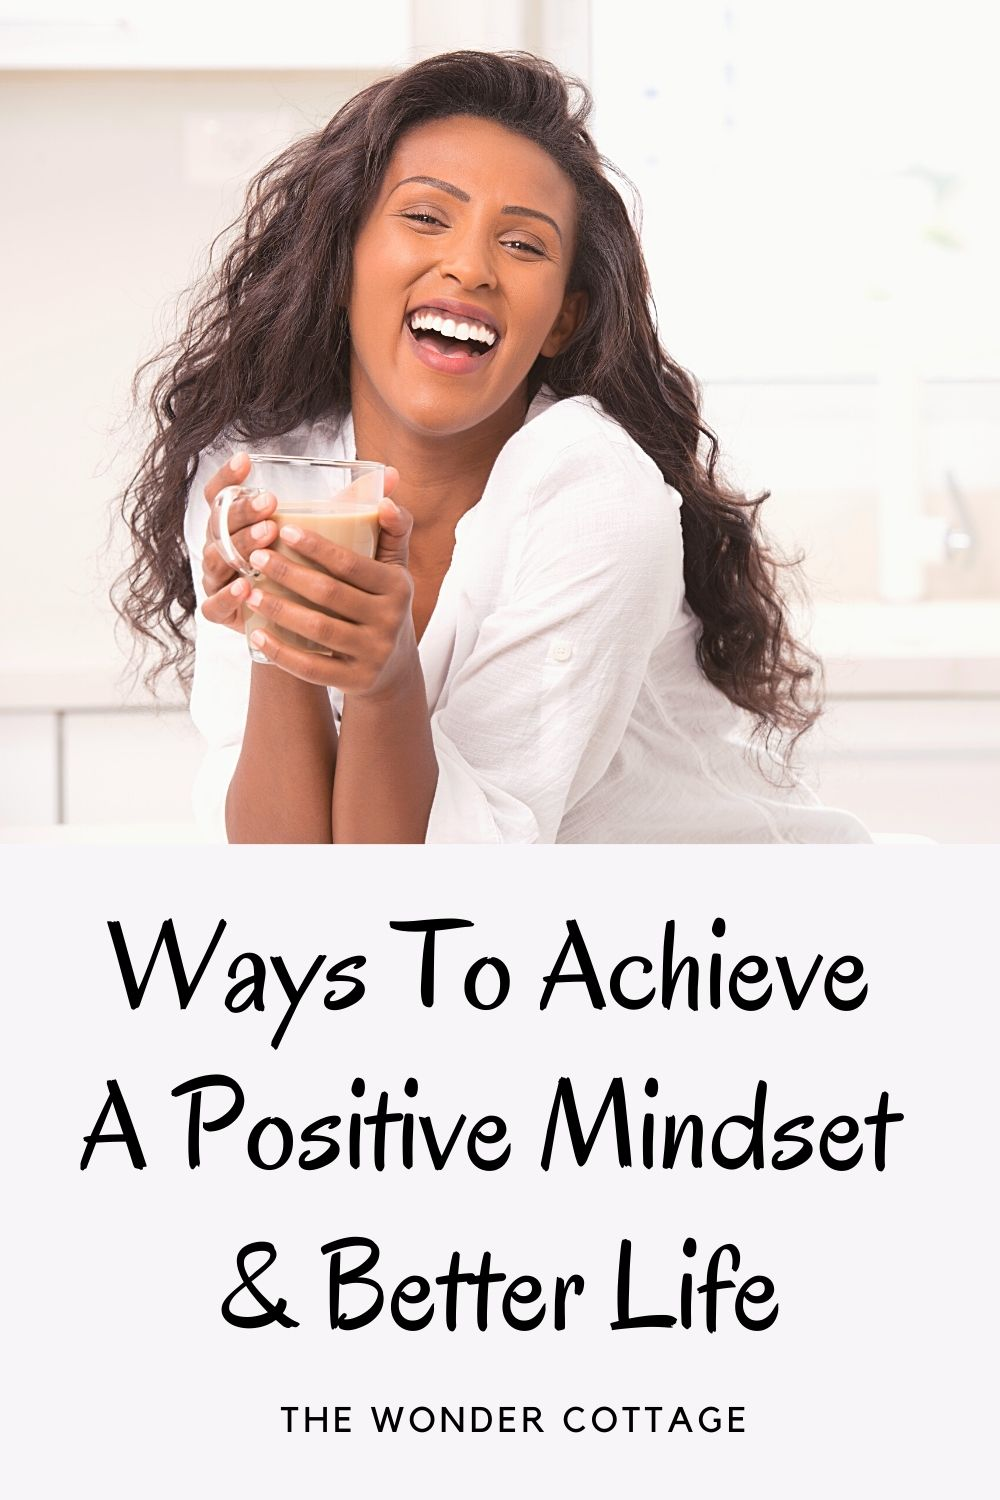 Ways To Achieve A Positive Mindset And Better Life